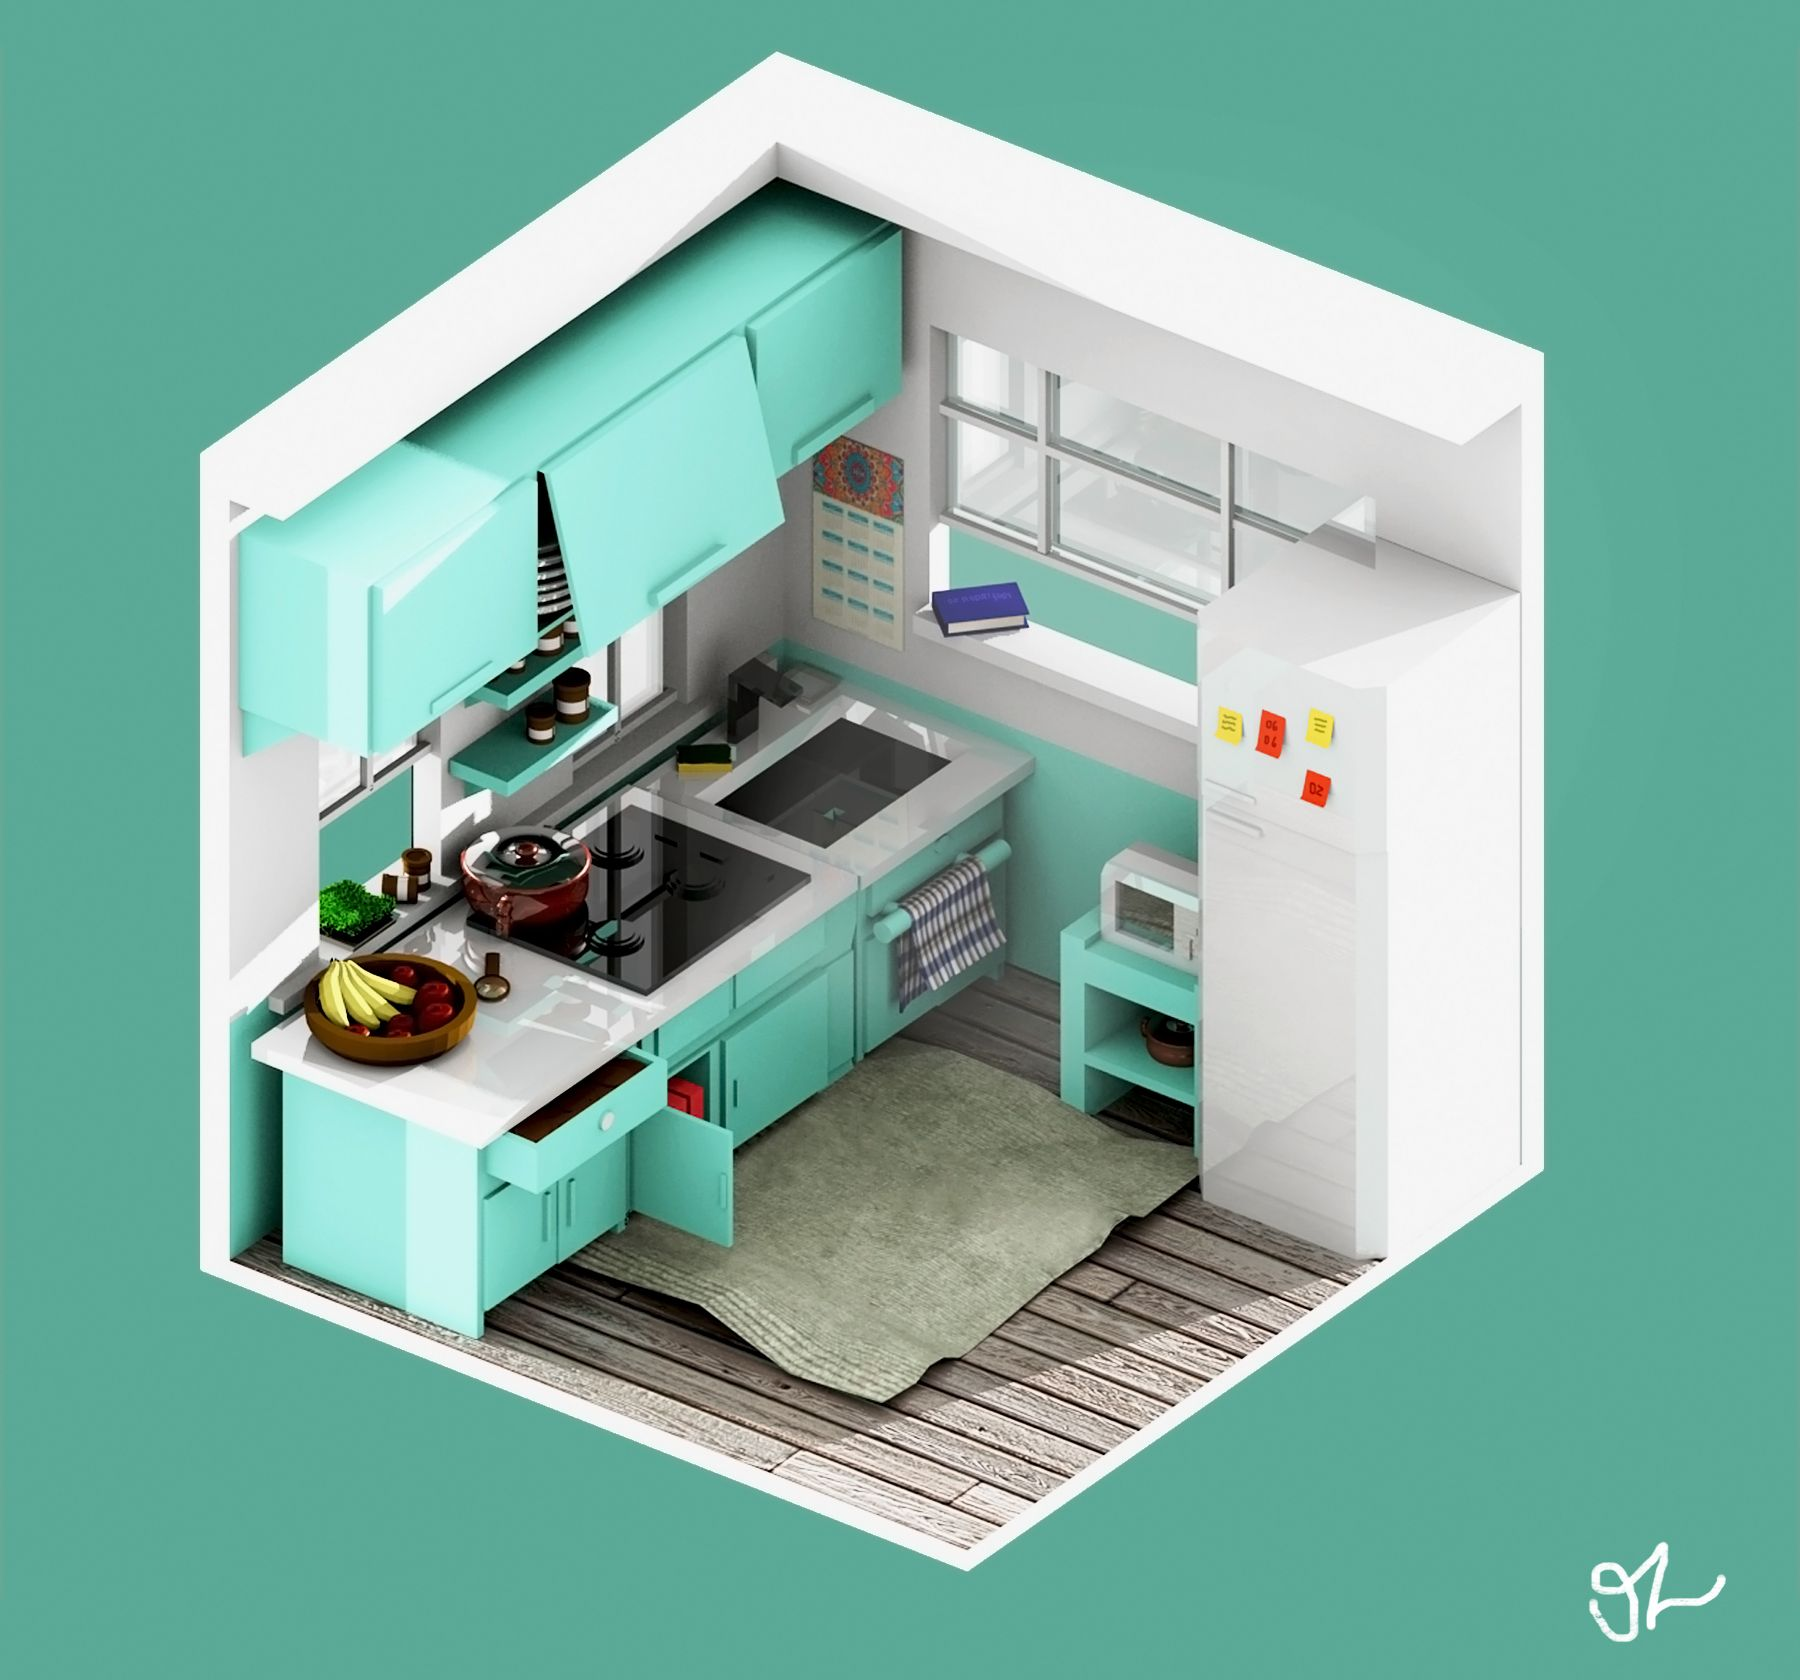 Kitchen Architecture Lowpoly Isometric Voxel Interior Blender Design Game Room Design Hotel Room Design